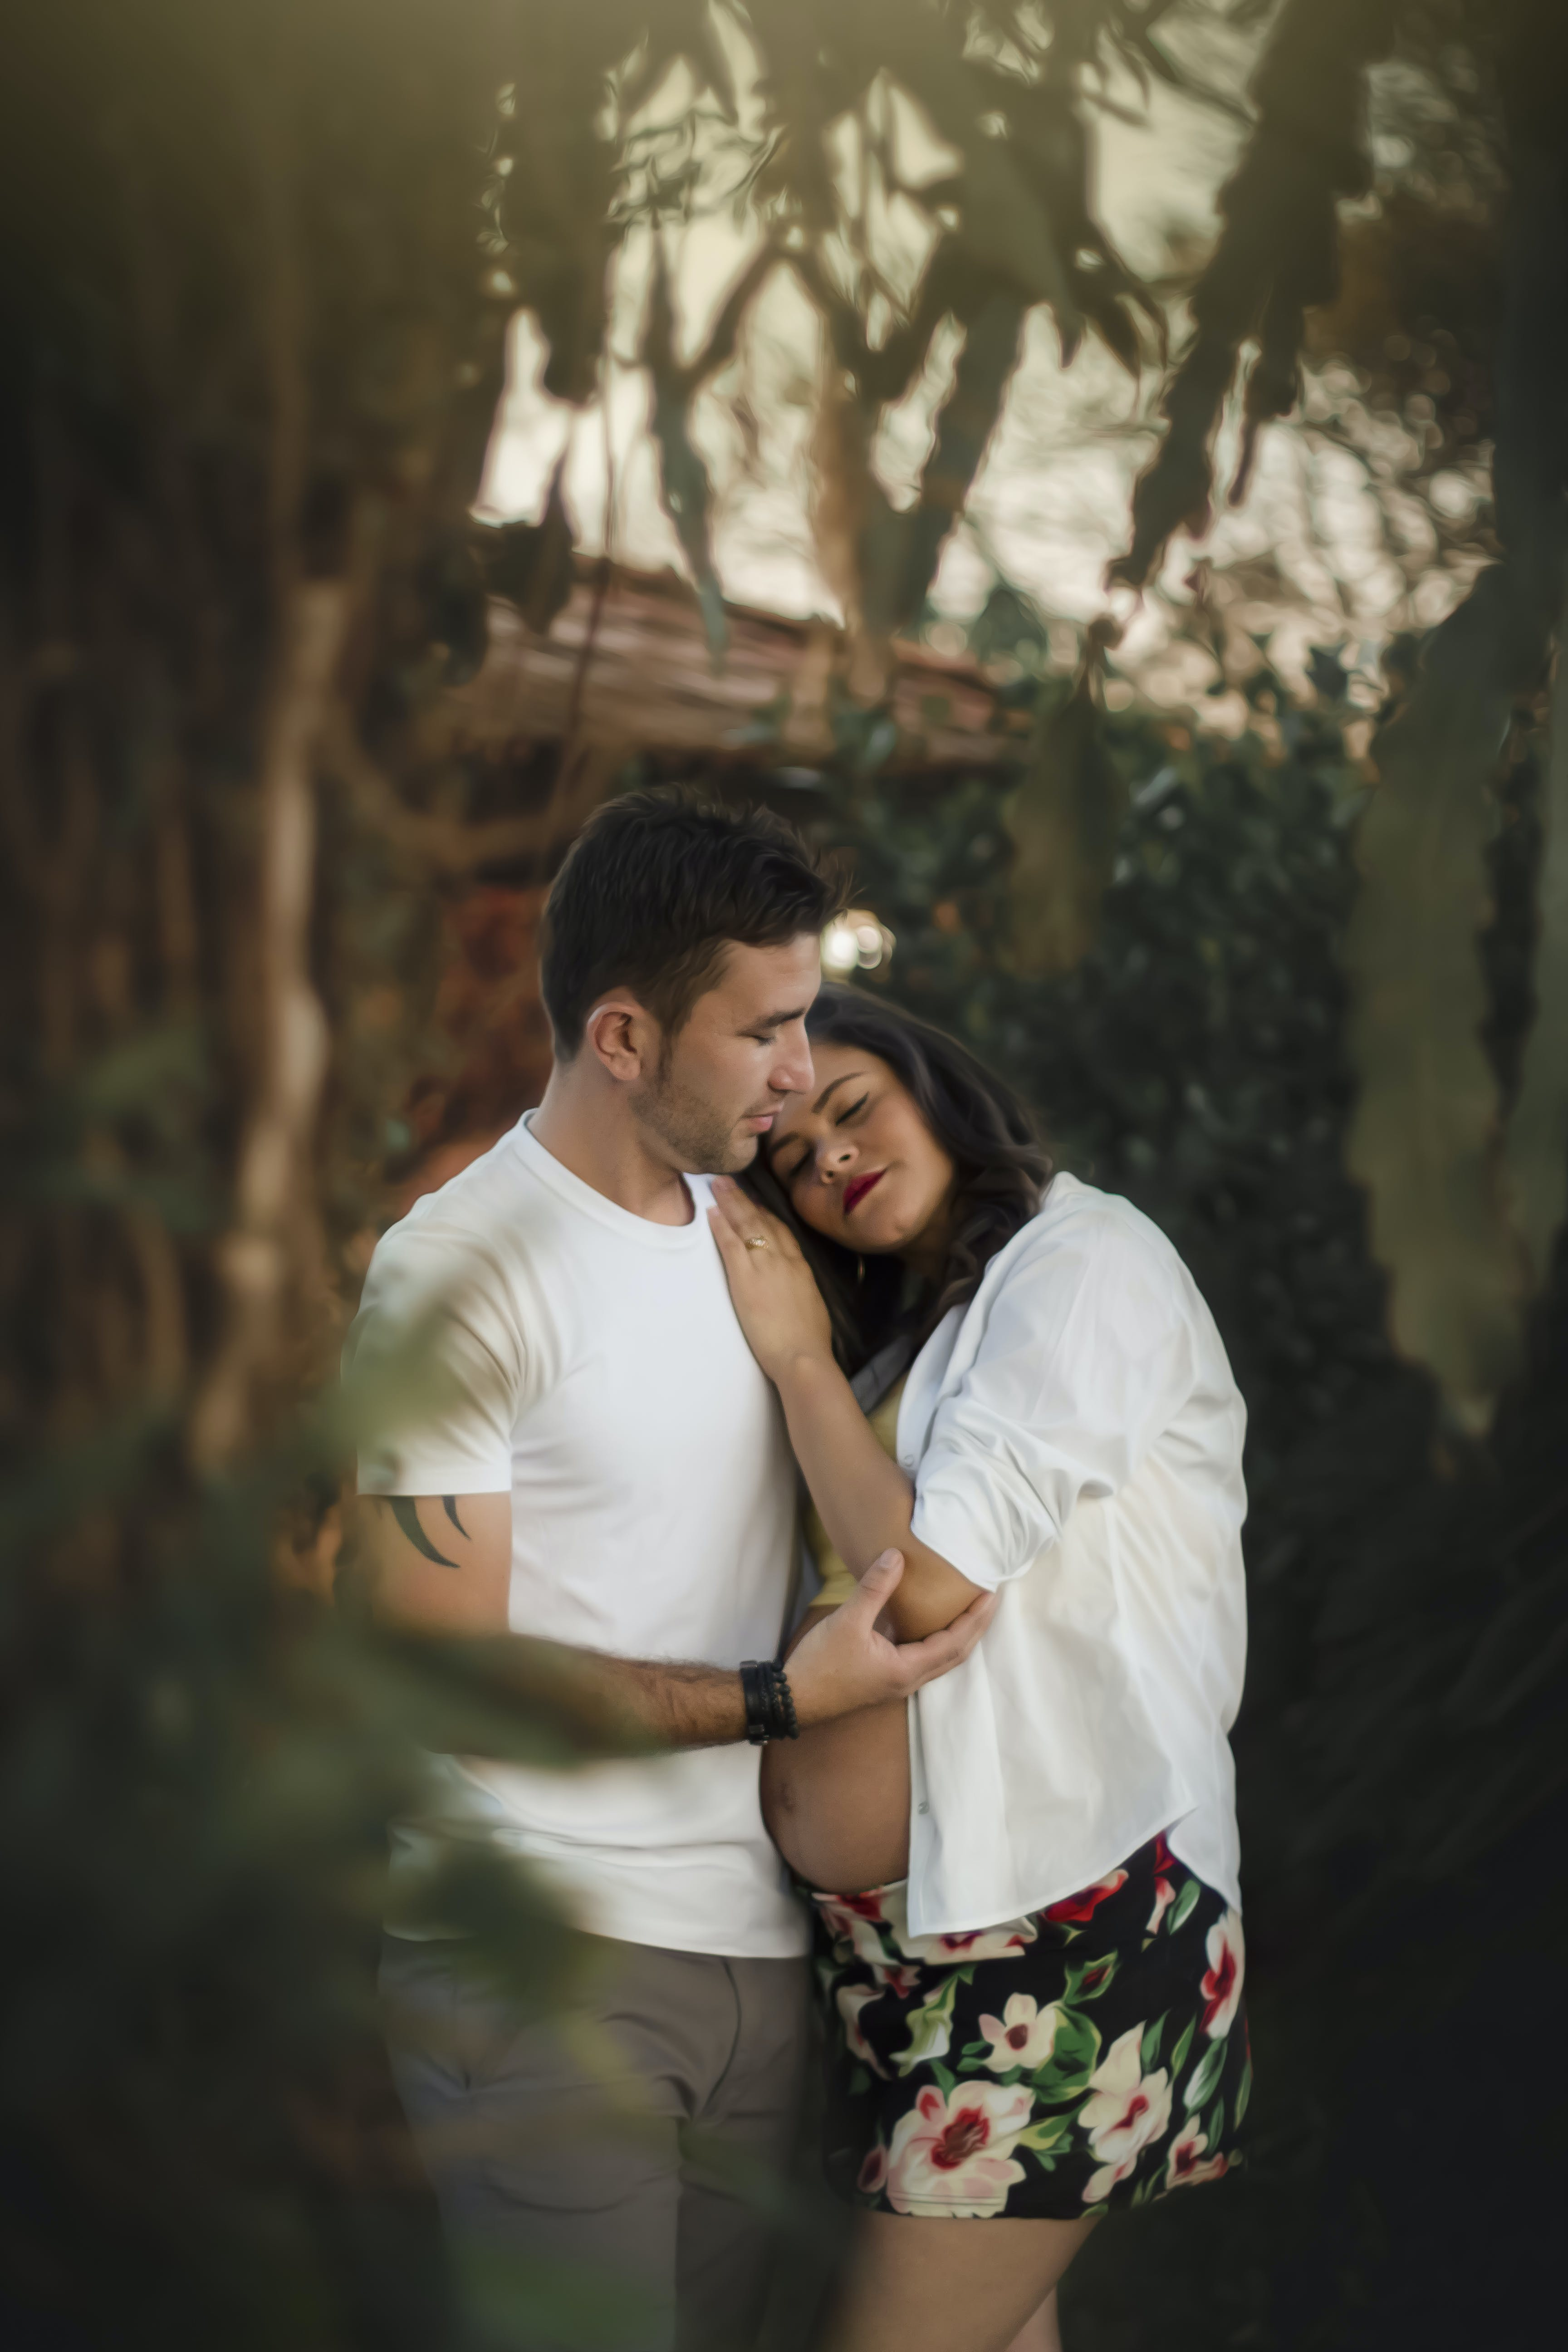 Man and Woman Loving Outdoor